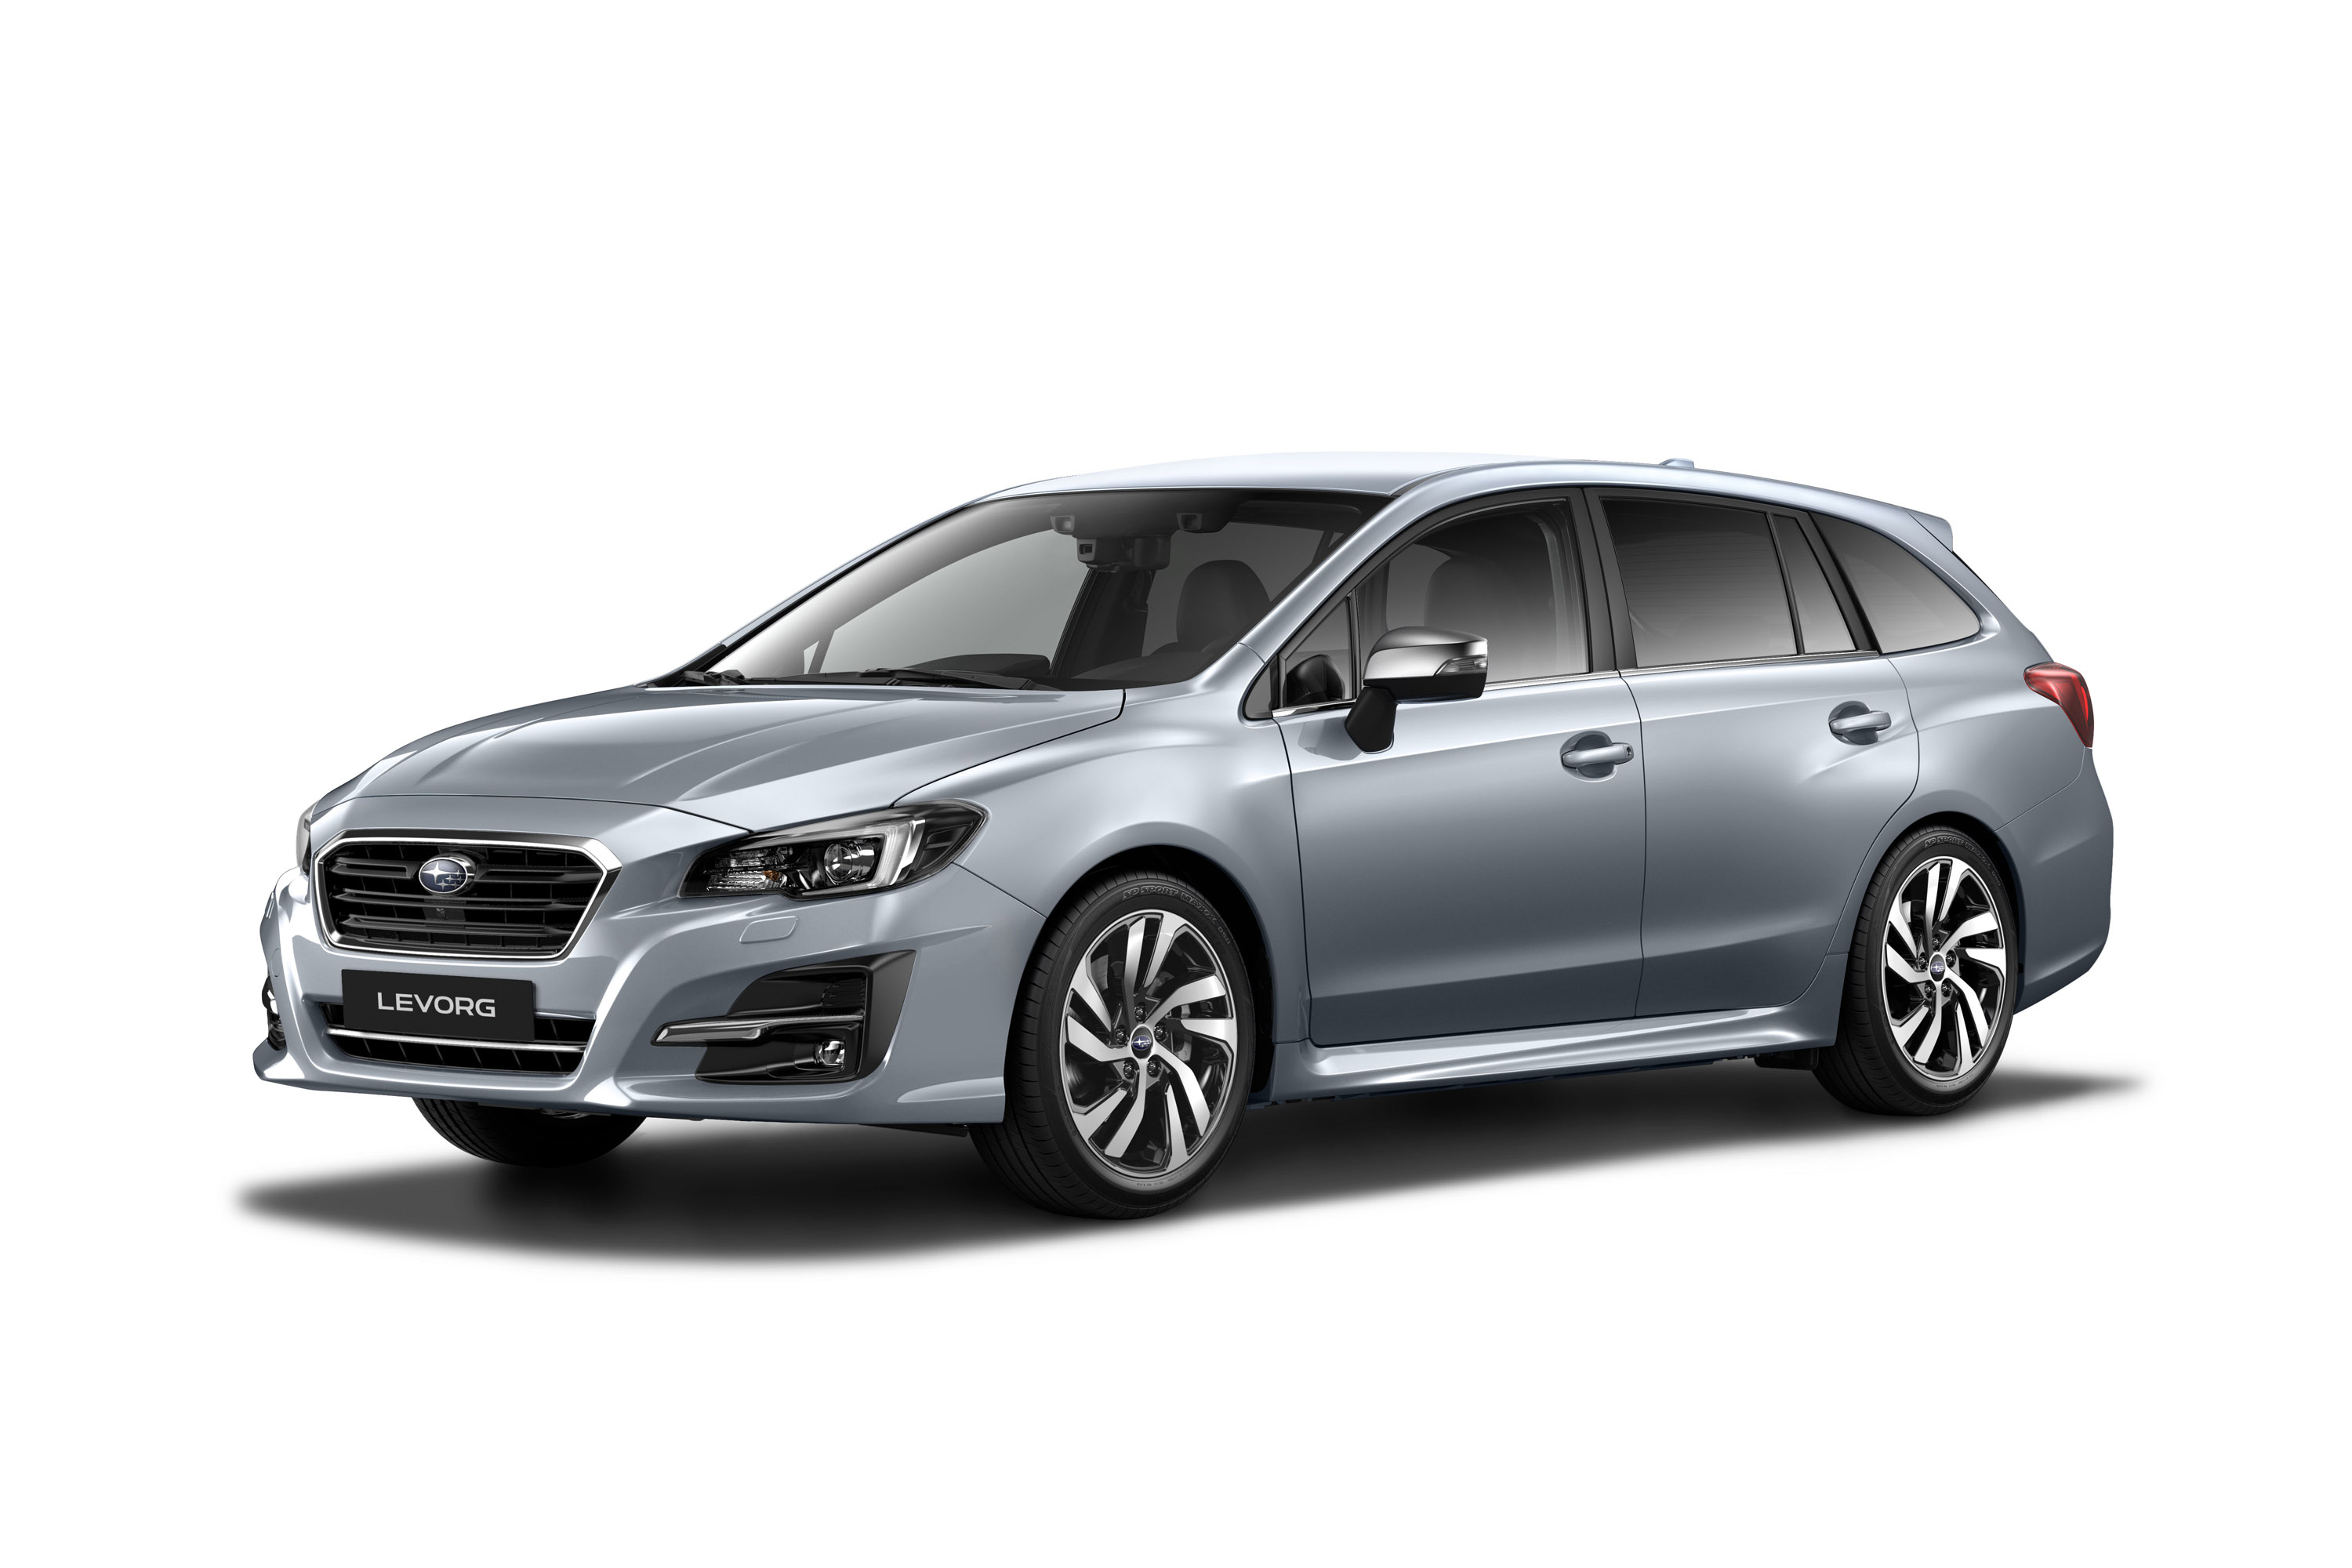 2019 Subaru Levorg Catches The Eye With Sexy Design And